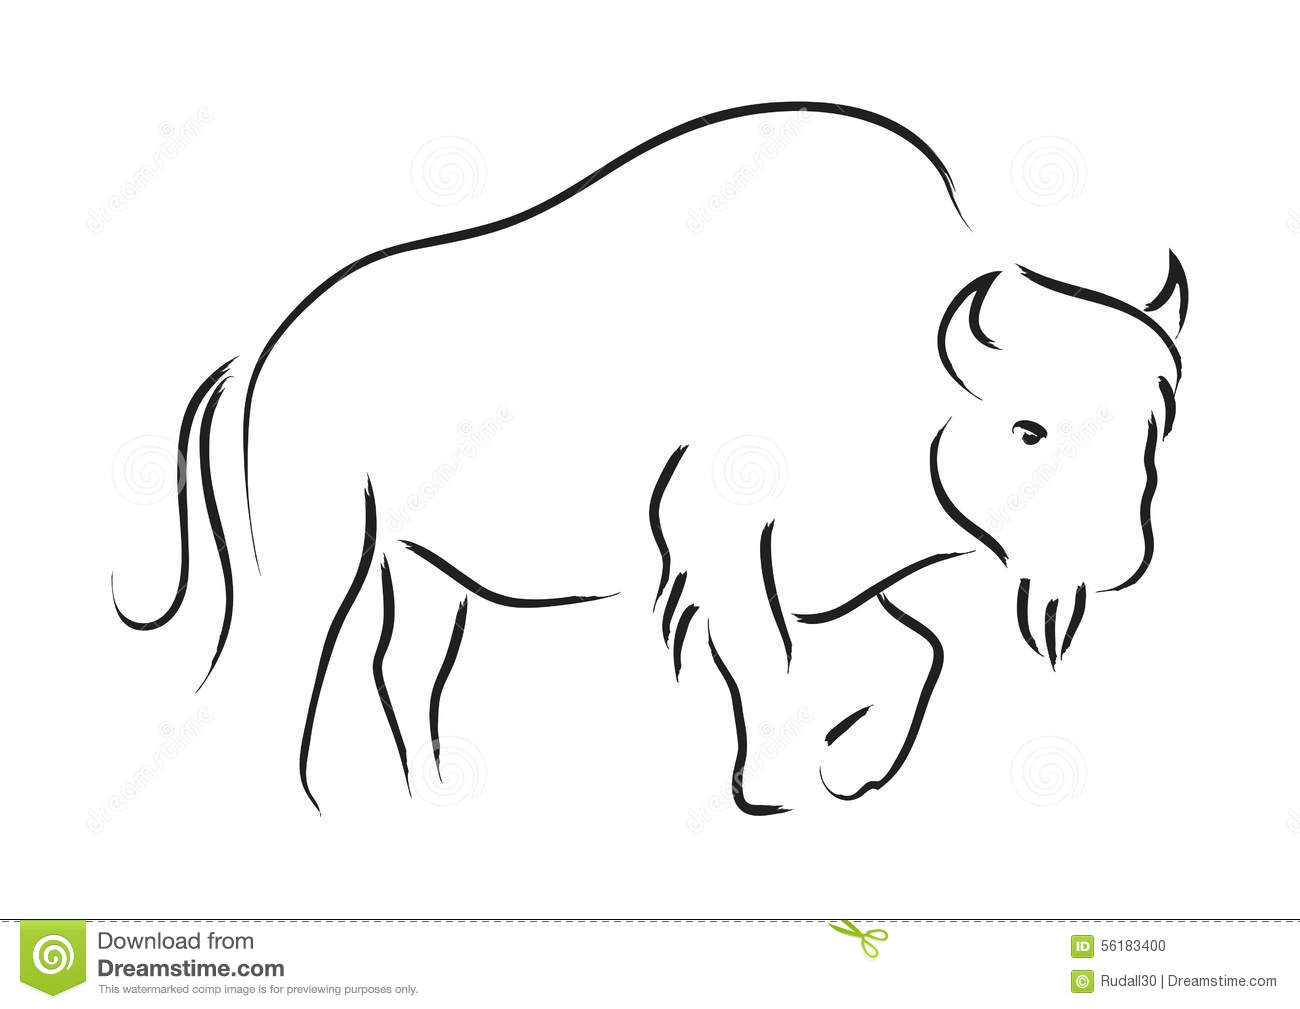 Line Art Design Illustration : Bison stock vector image of wildlife graphic symbol